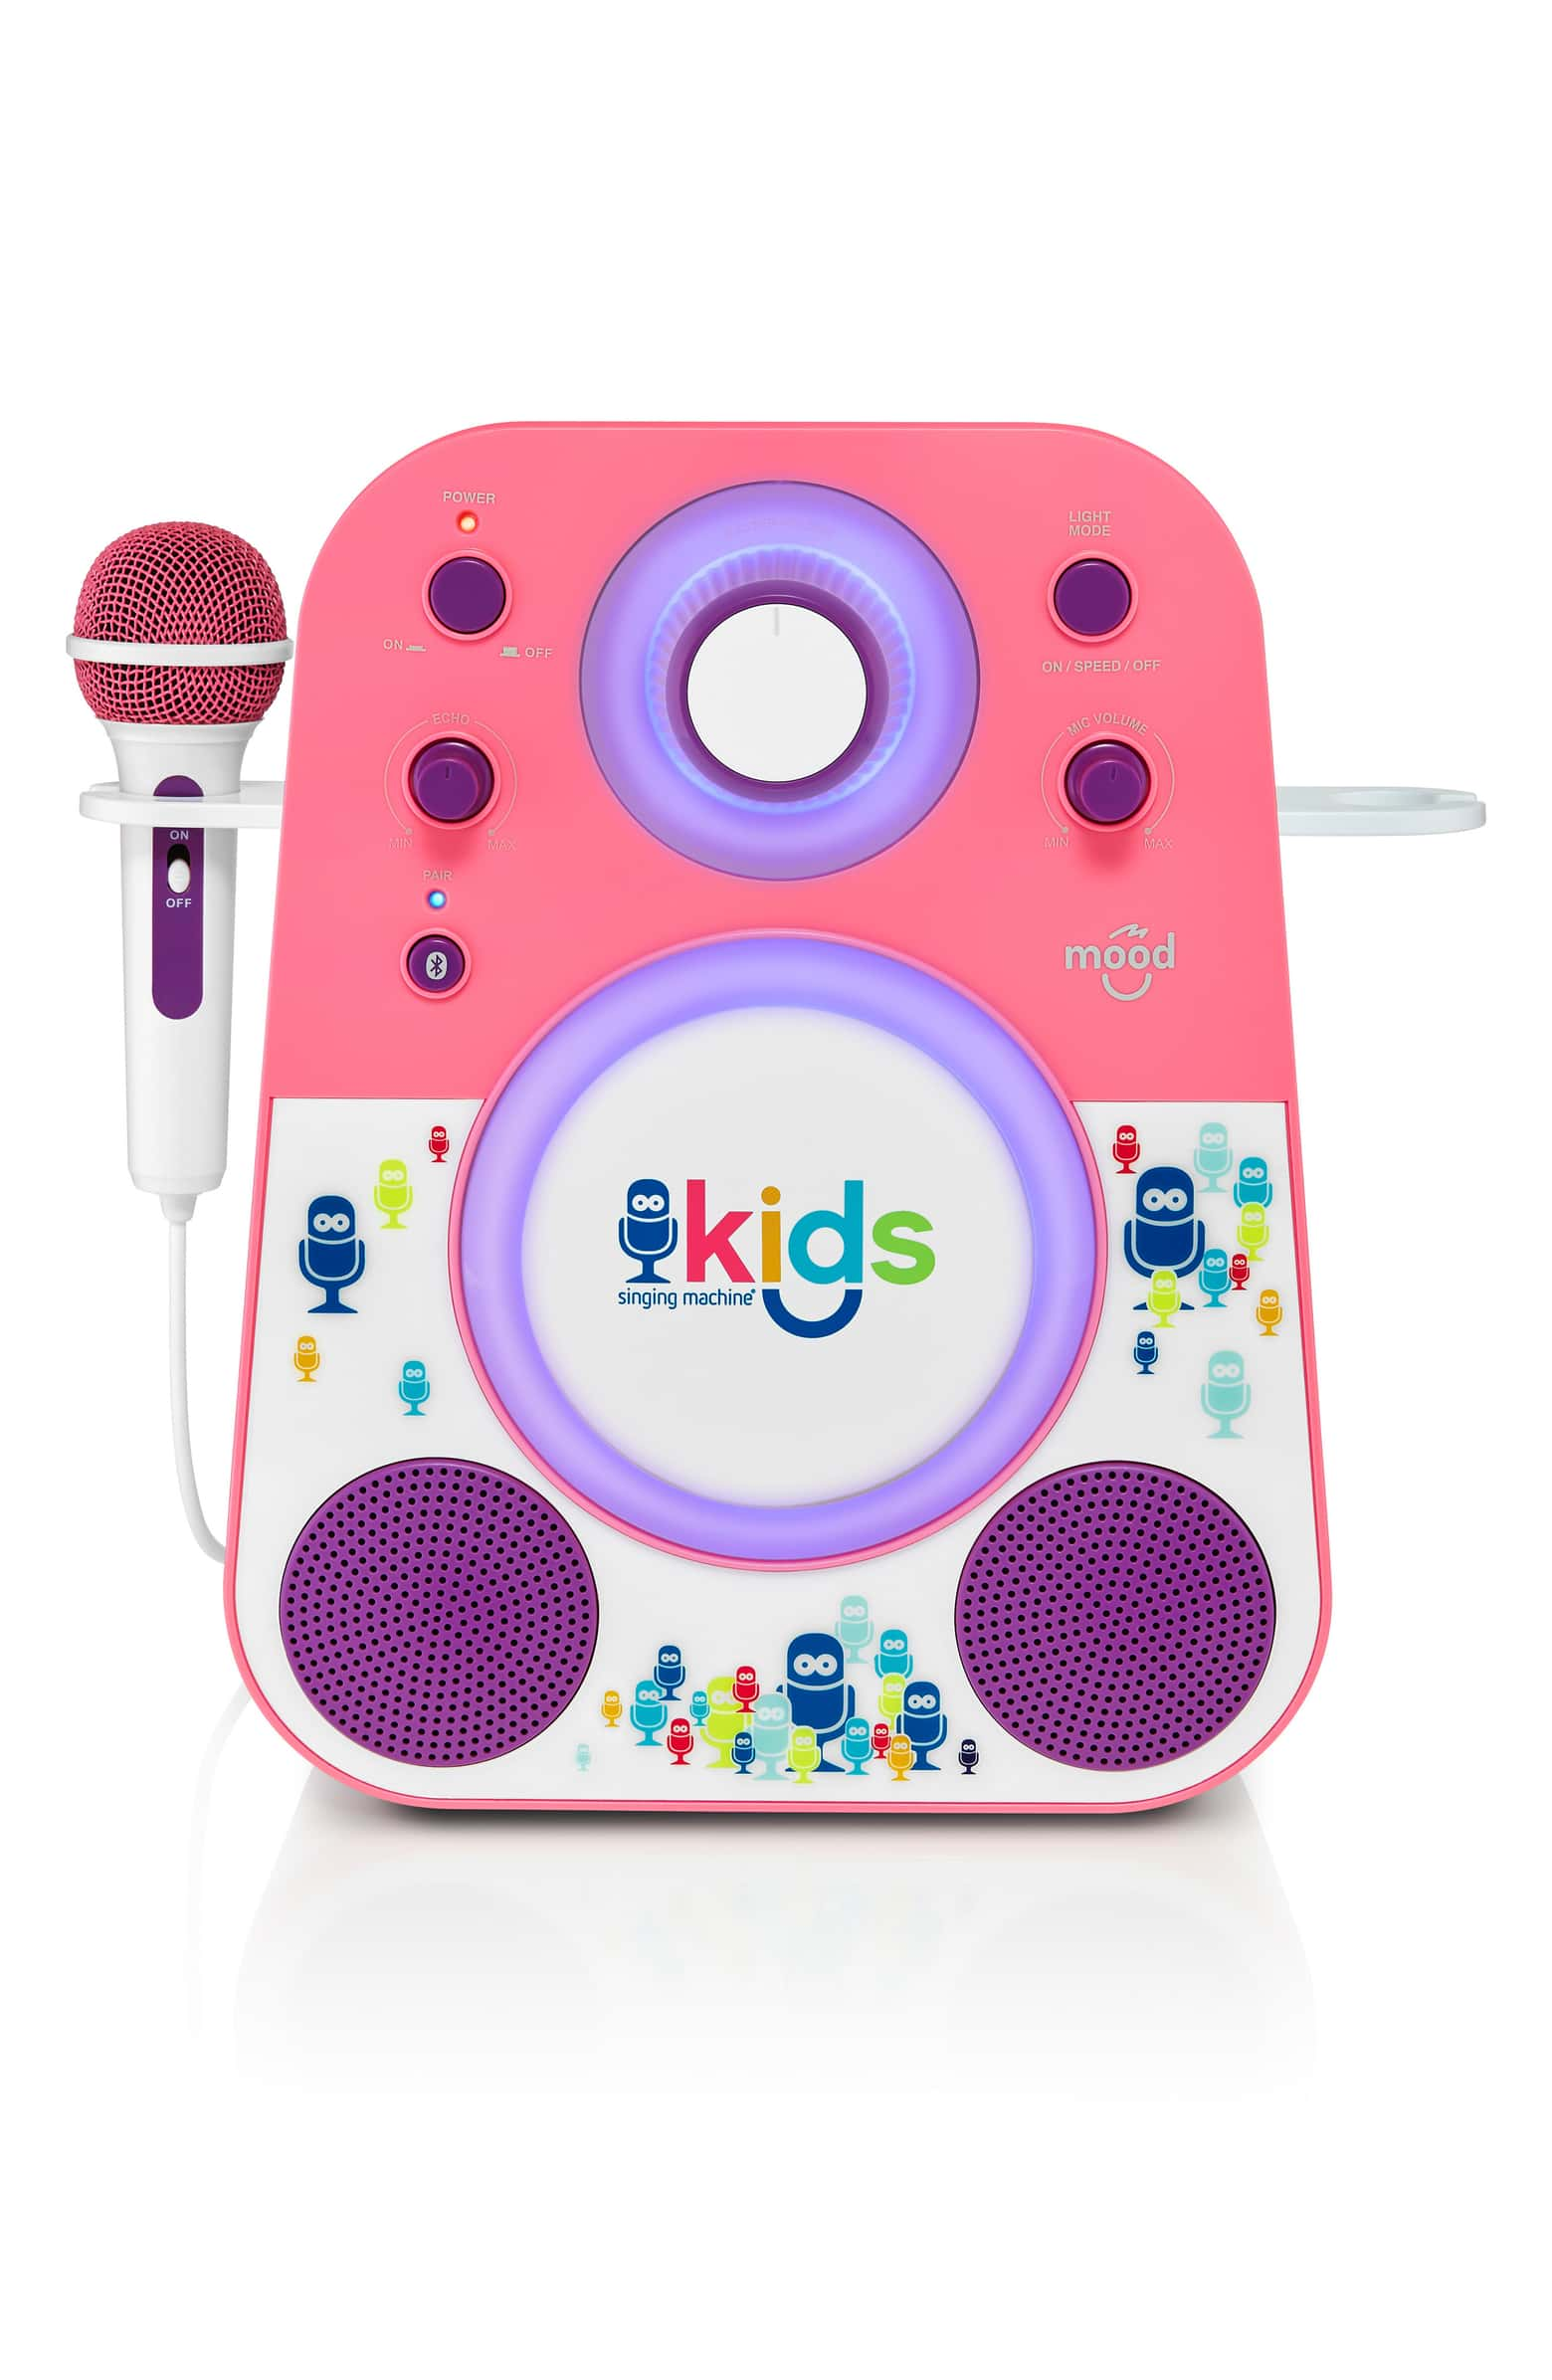 Singing Machine Kids Mood Karaoke System